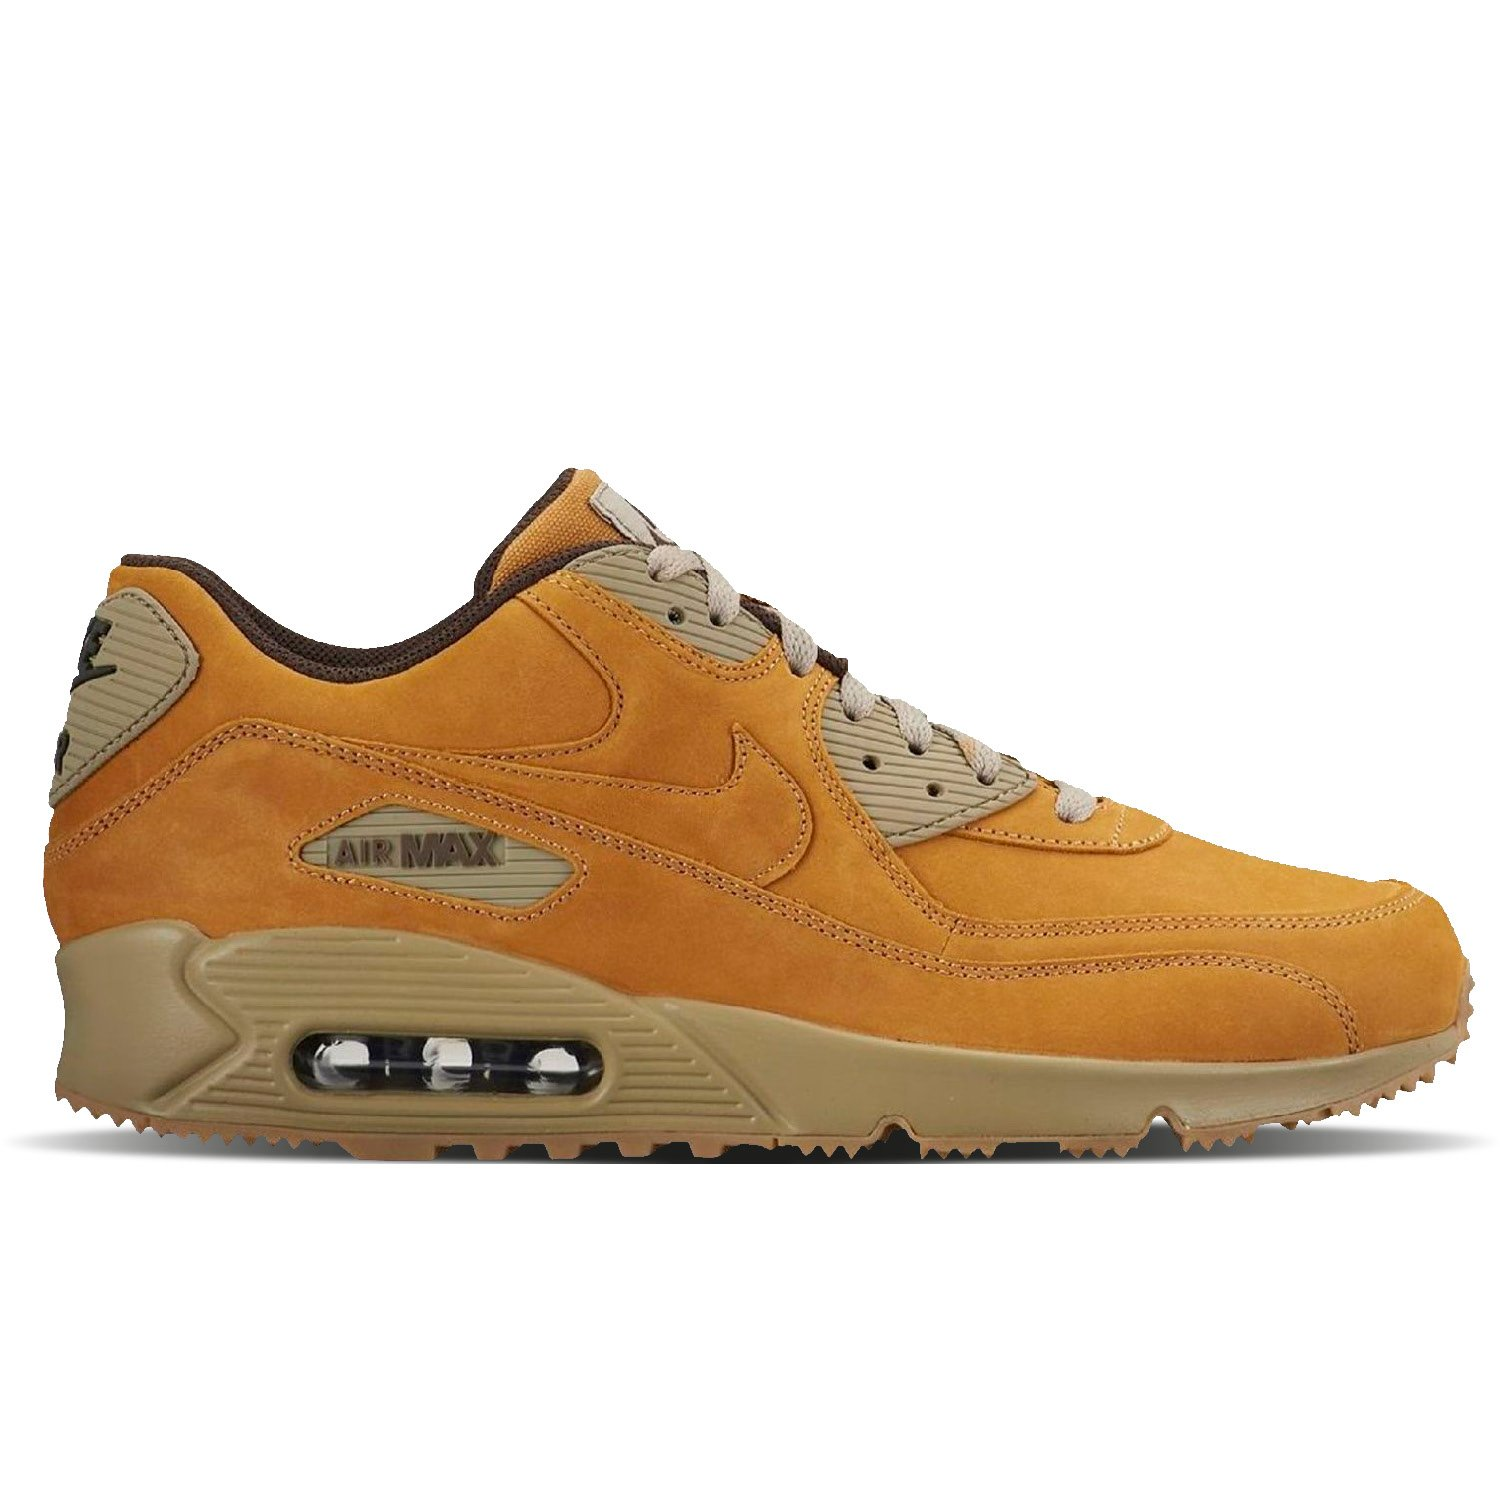 Nike Air Max 90 Winter Premium Wheat Pack 683282 700